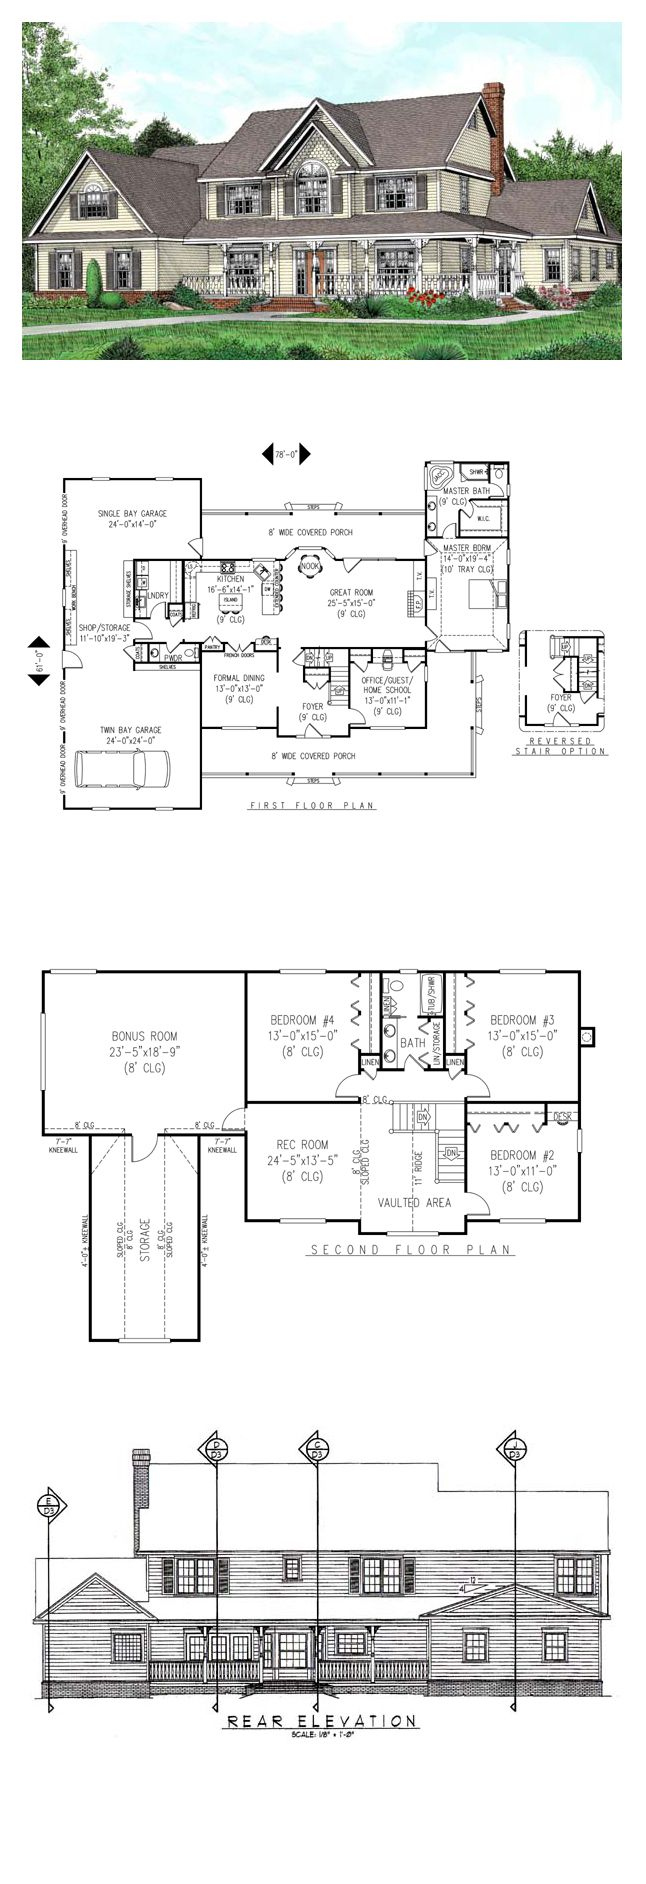 House plan - master on main, large garage with work area, project room upstairs, office on first floor